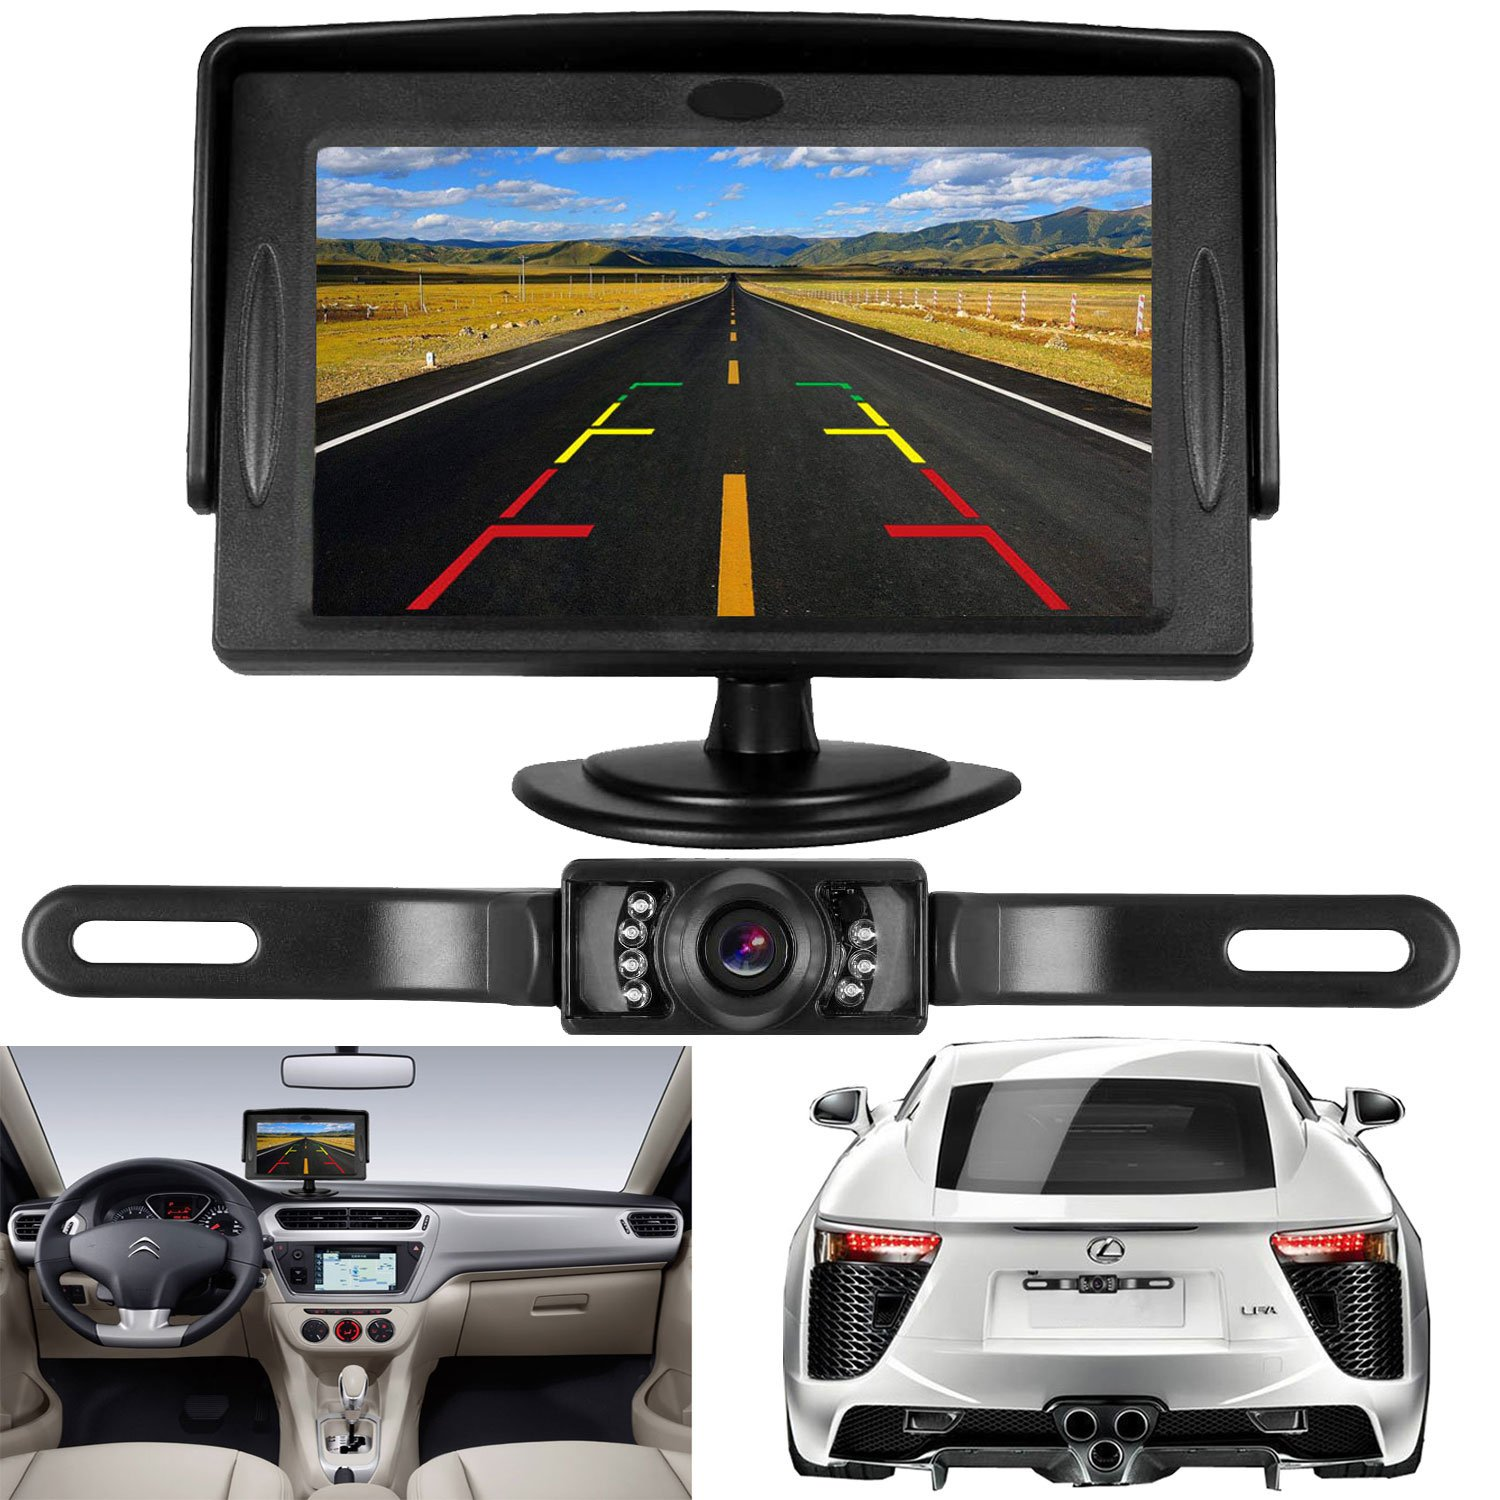 DohonesBest Backup Camera and 4.3 Monitor Kit For Car/SUV/Truck/Van/Camper Wire Single Power for Whole Rear View Camera System Rear View/Continuous View Optional IP68 Waterproof Night Vision